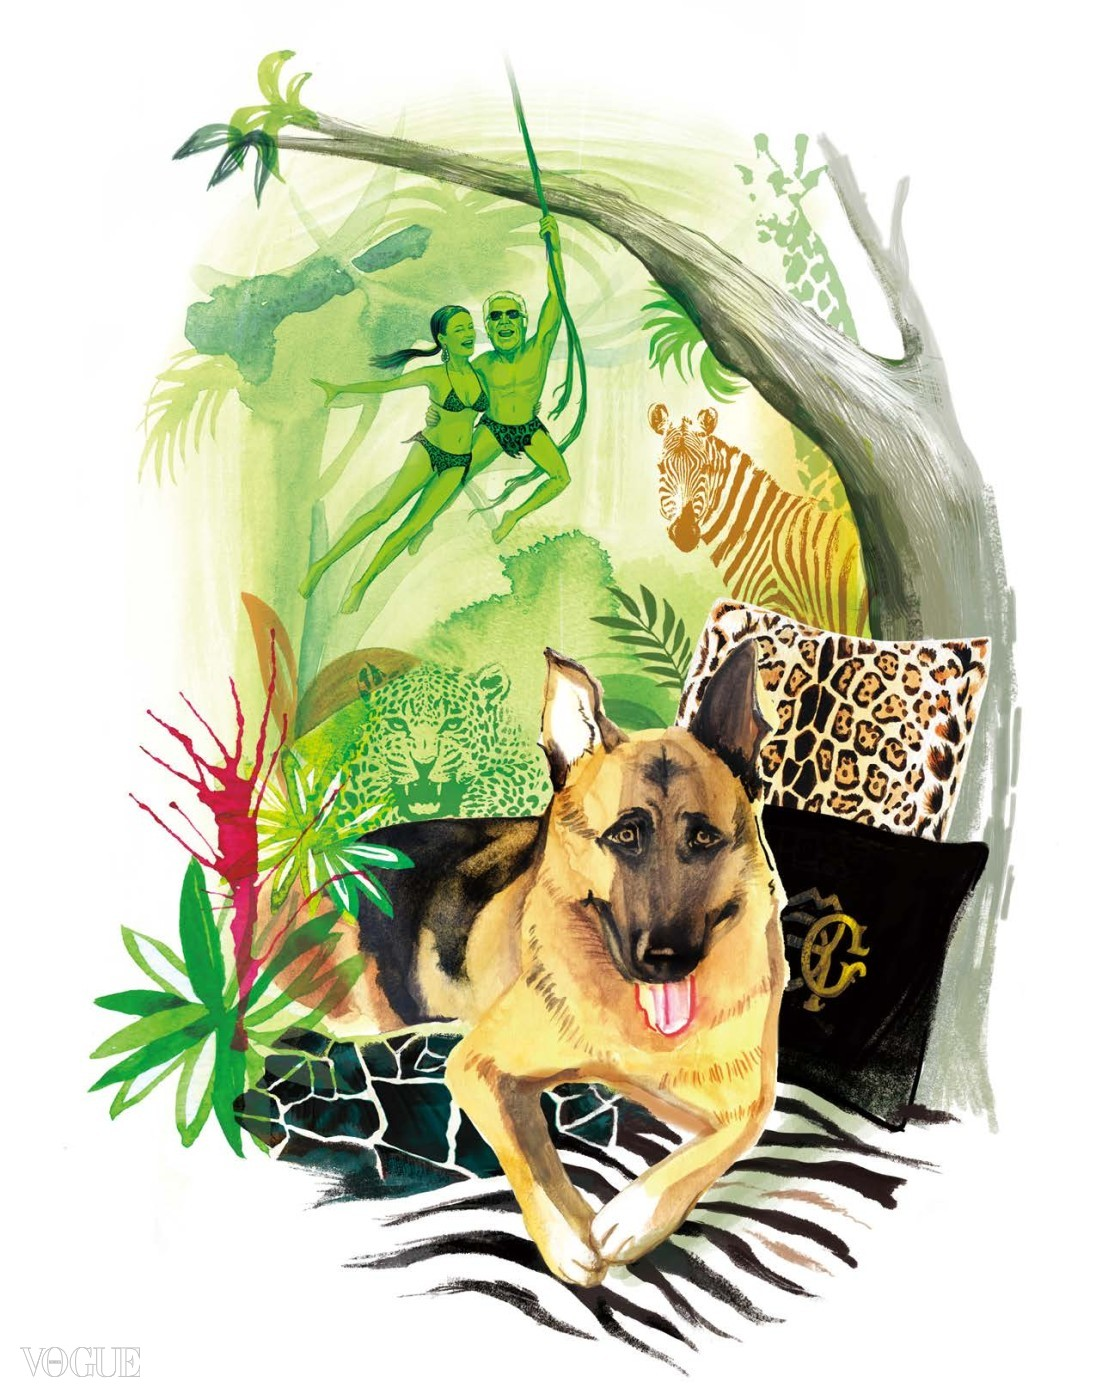 vogue_pet_2015_aug_254-271_illustation_-035